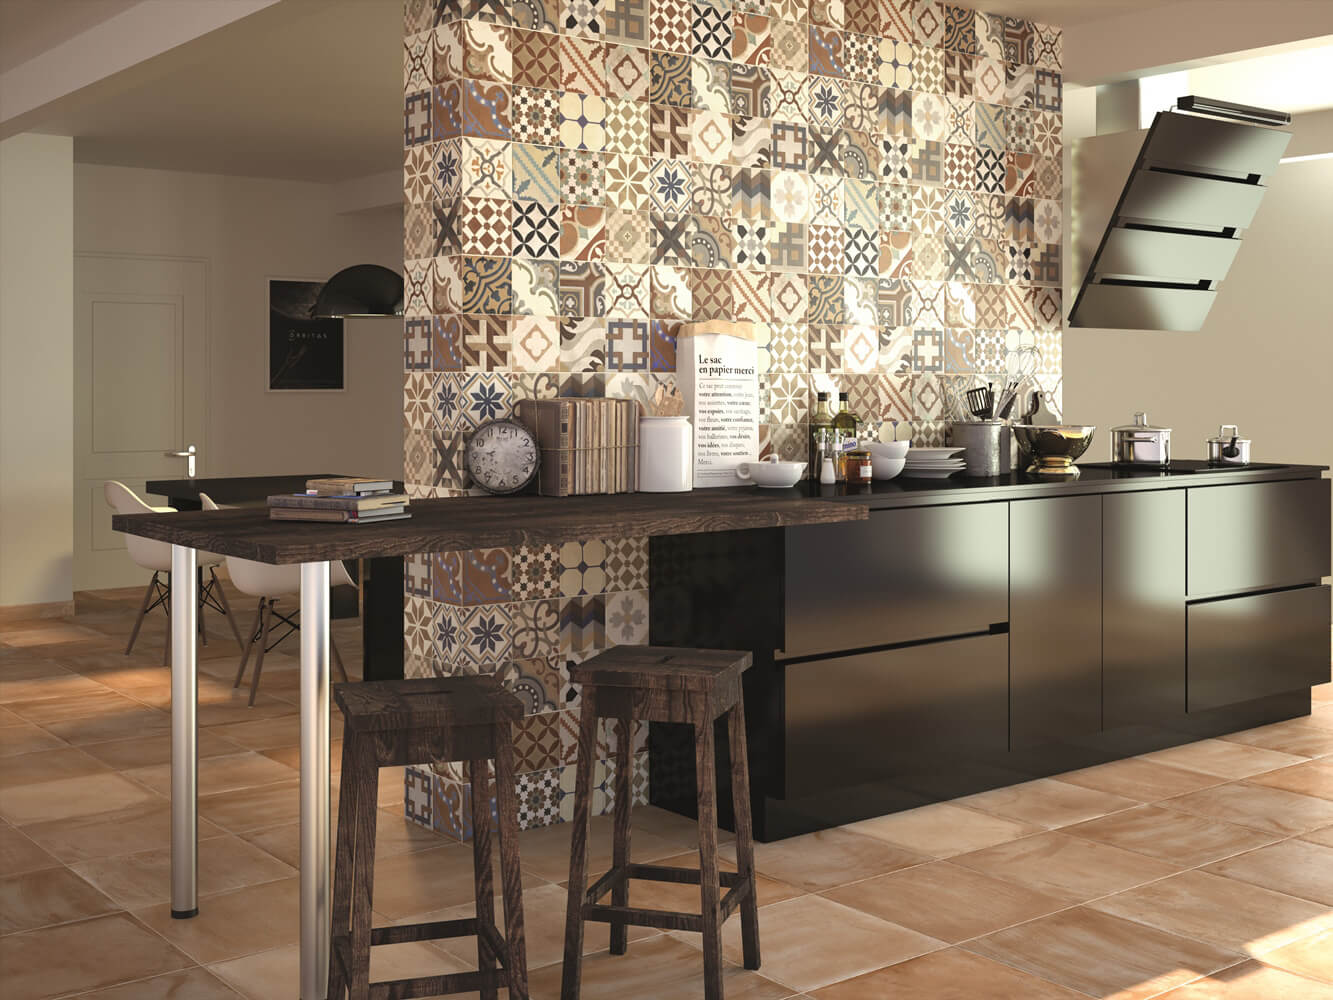 Kitchen Splashback Tile: Best Design and Decoration Ideas. Unusual zoning wall tiled with patchwork